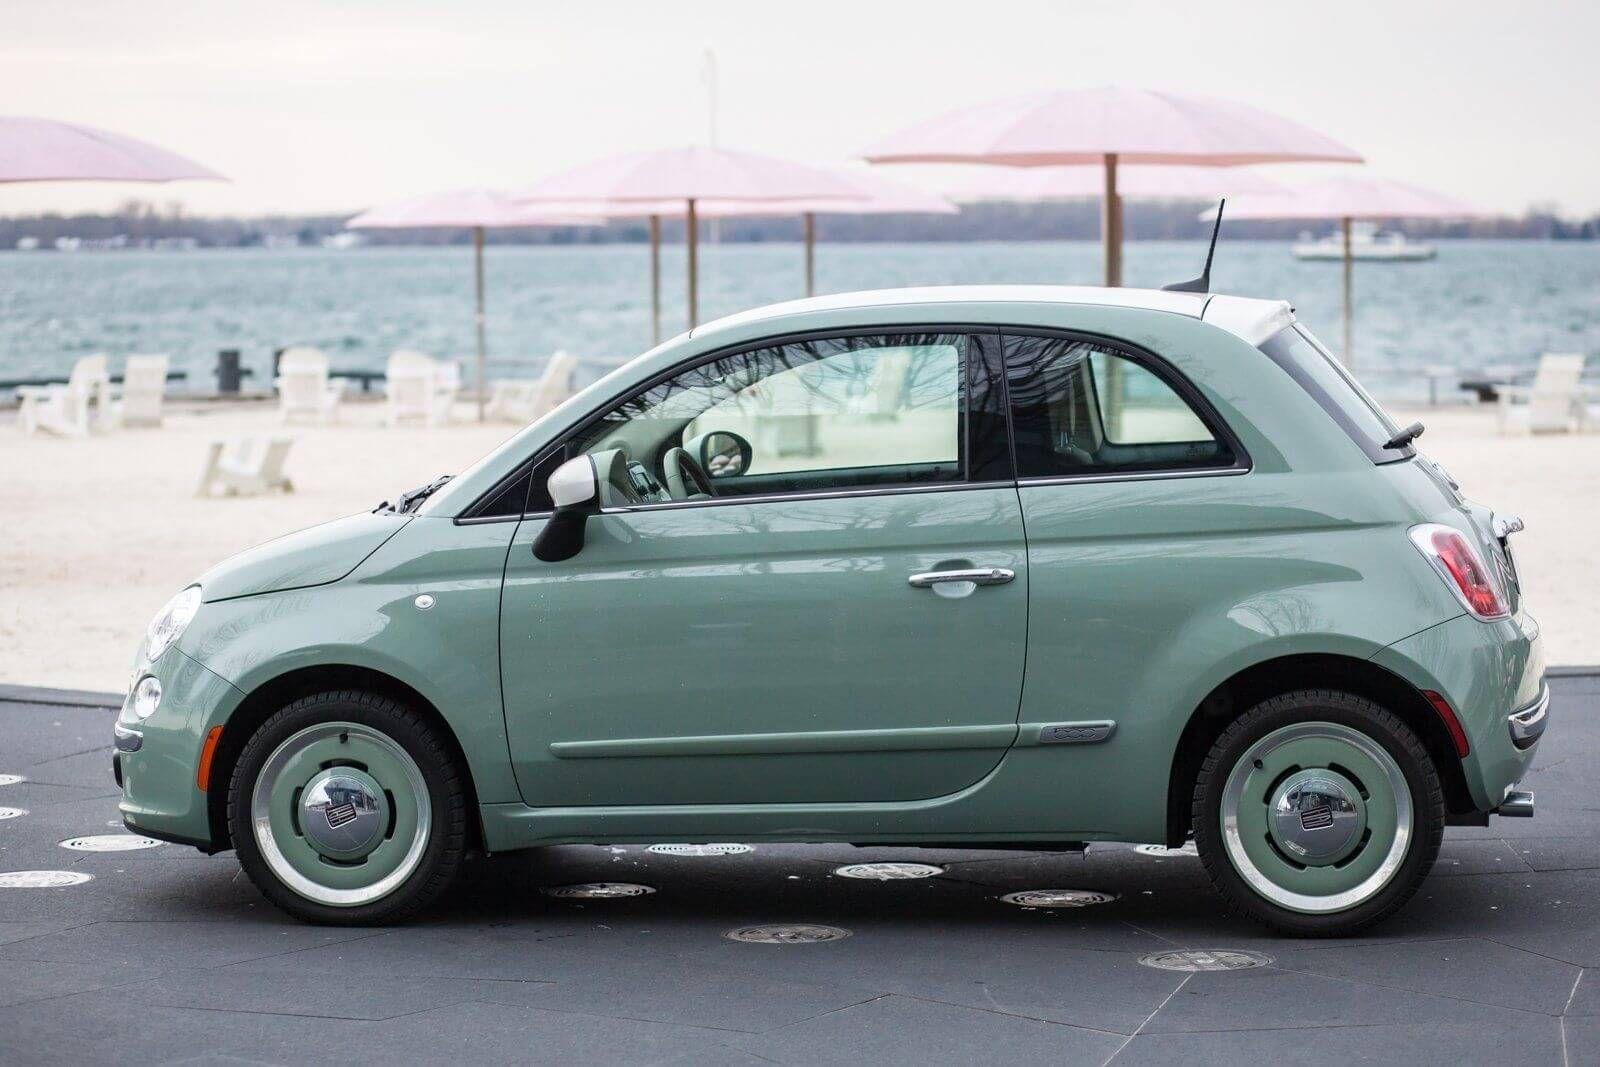 New 2019 Fiat 500 Abarth Side HD Wallpapers | Car Blog